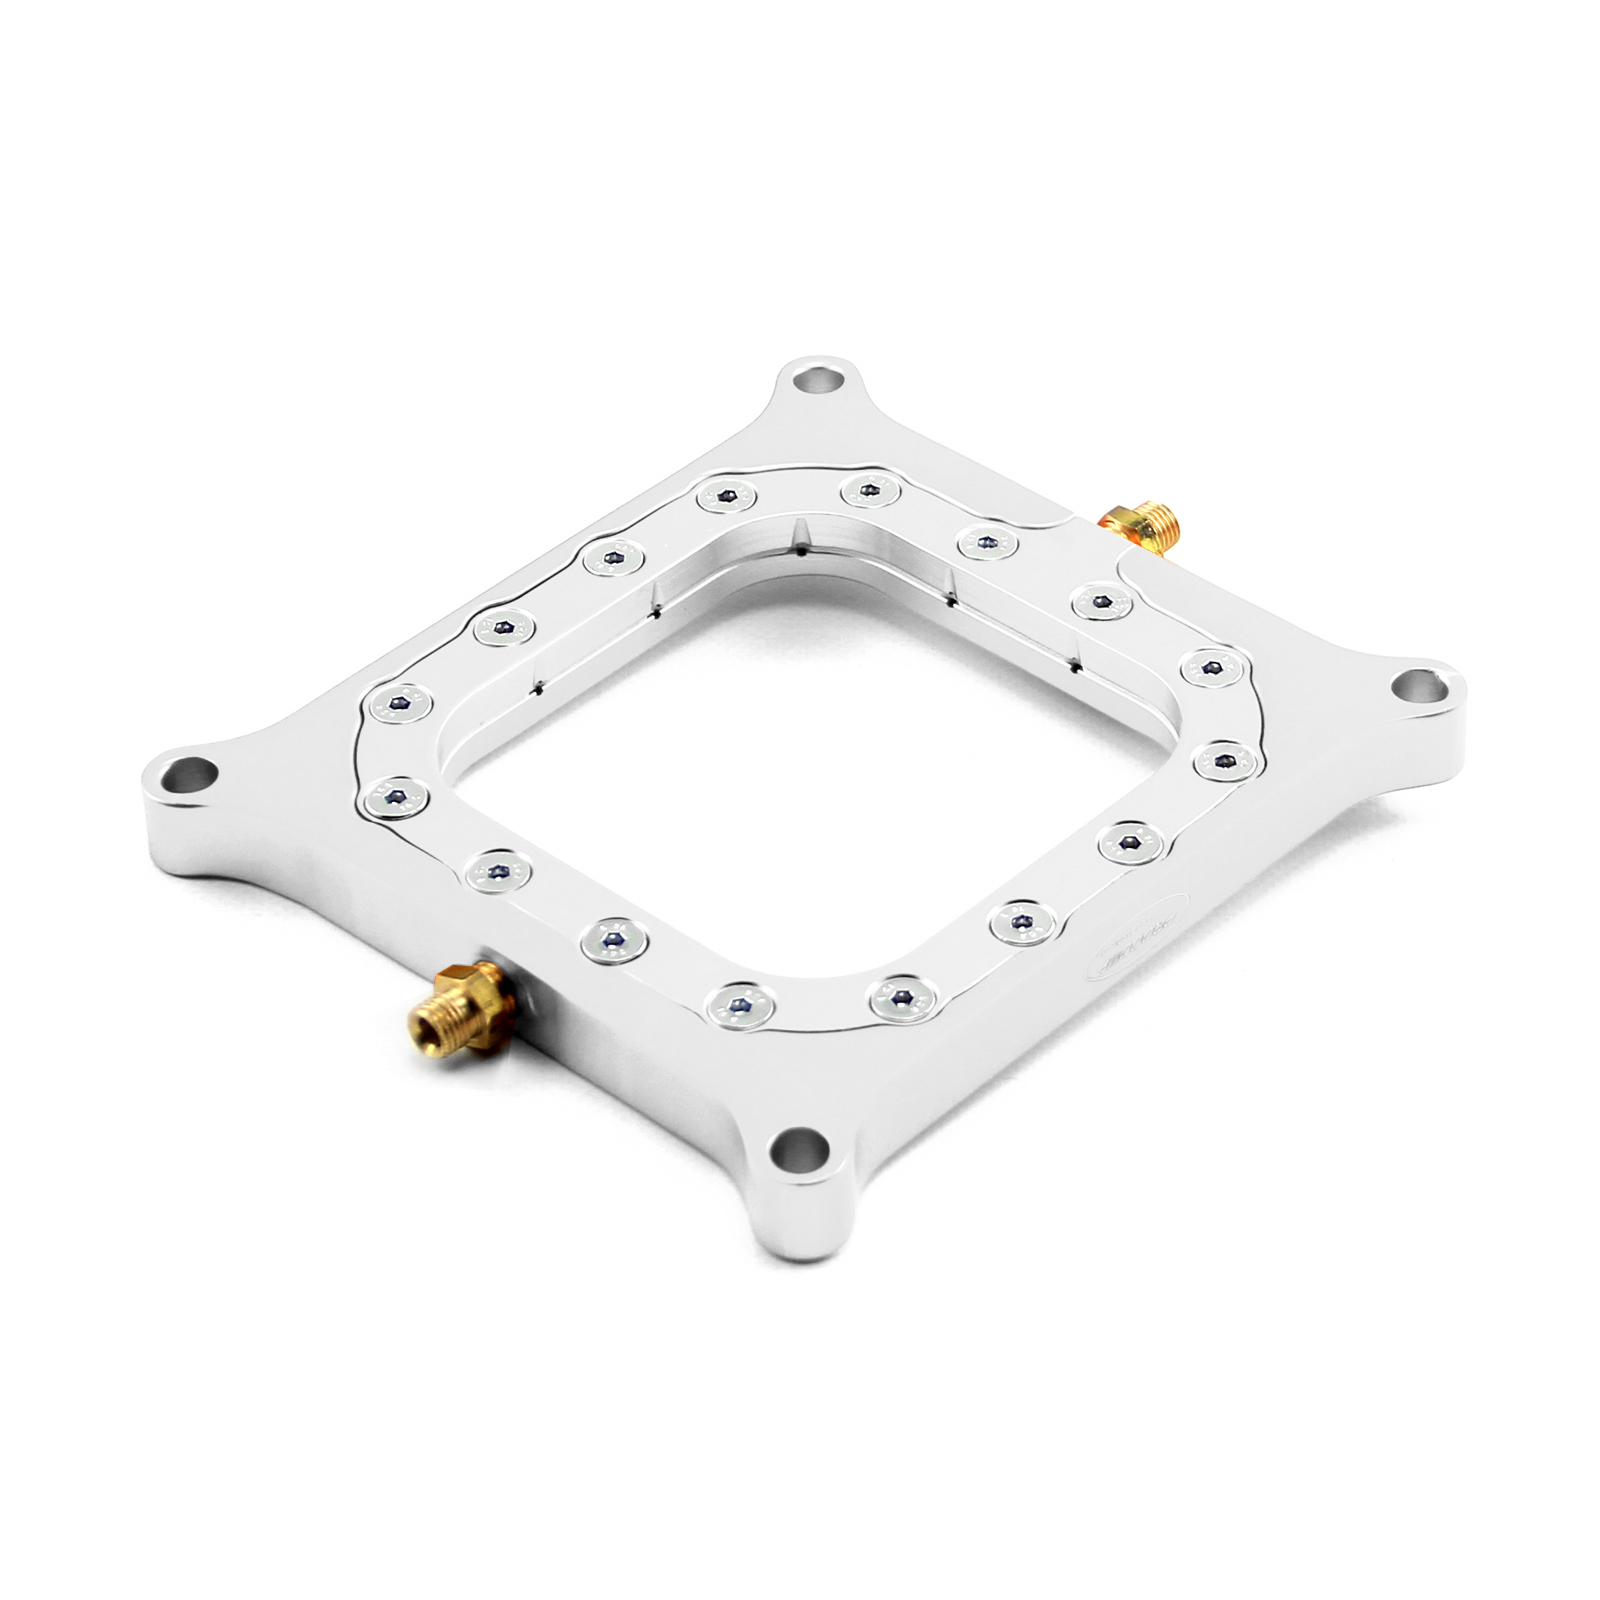 Nitrous Oxide 0.500 Polished Billet Square Bore Perimeter Injection Spacer Plate